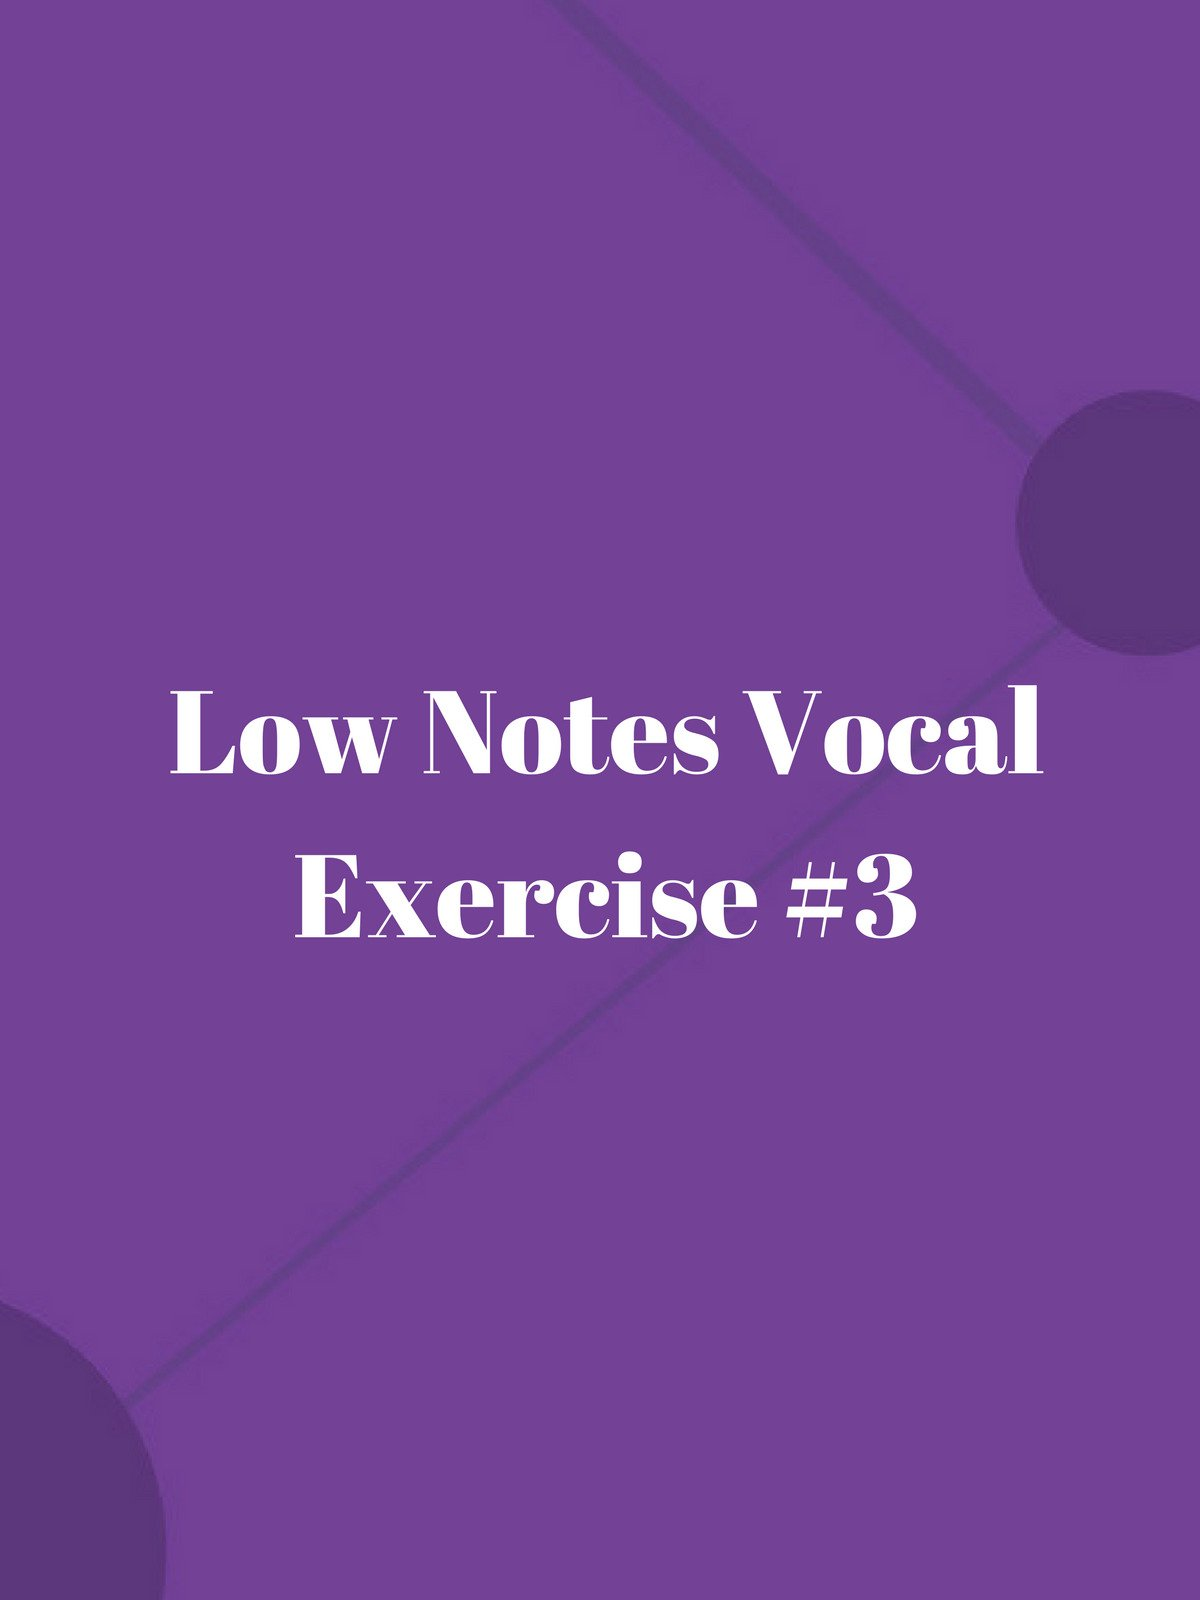 Low Notes Vocal Exercise #3